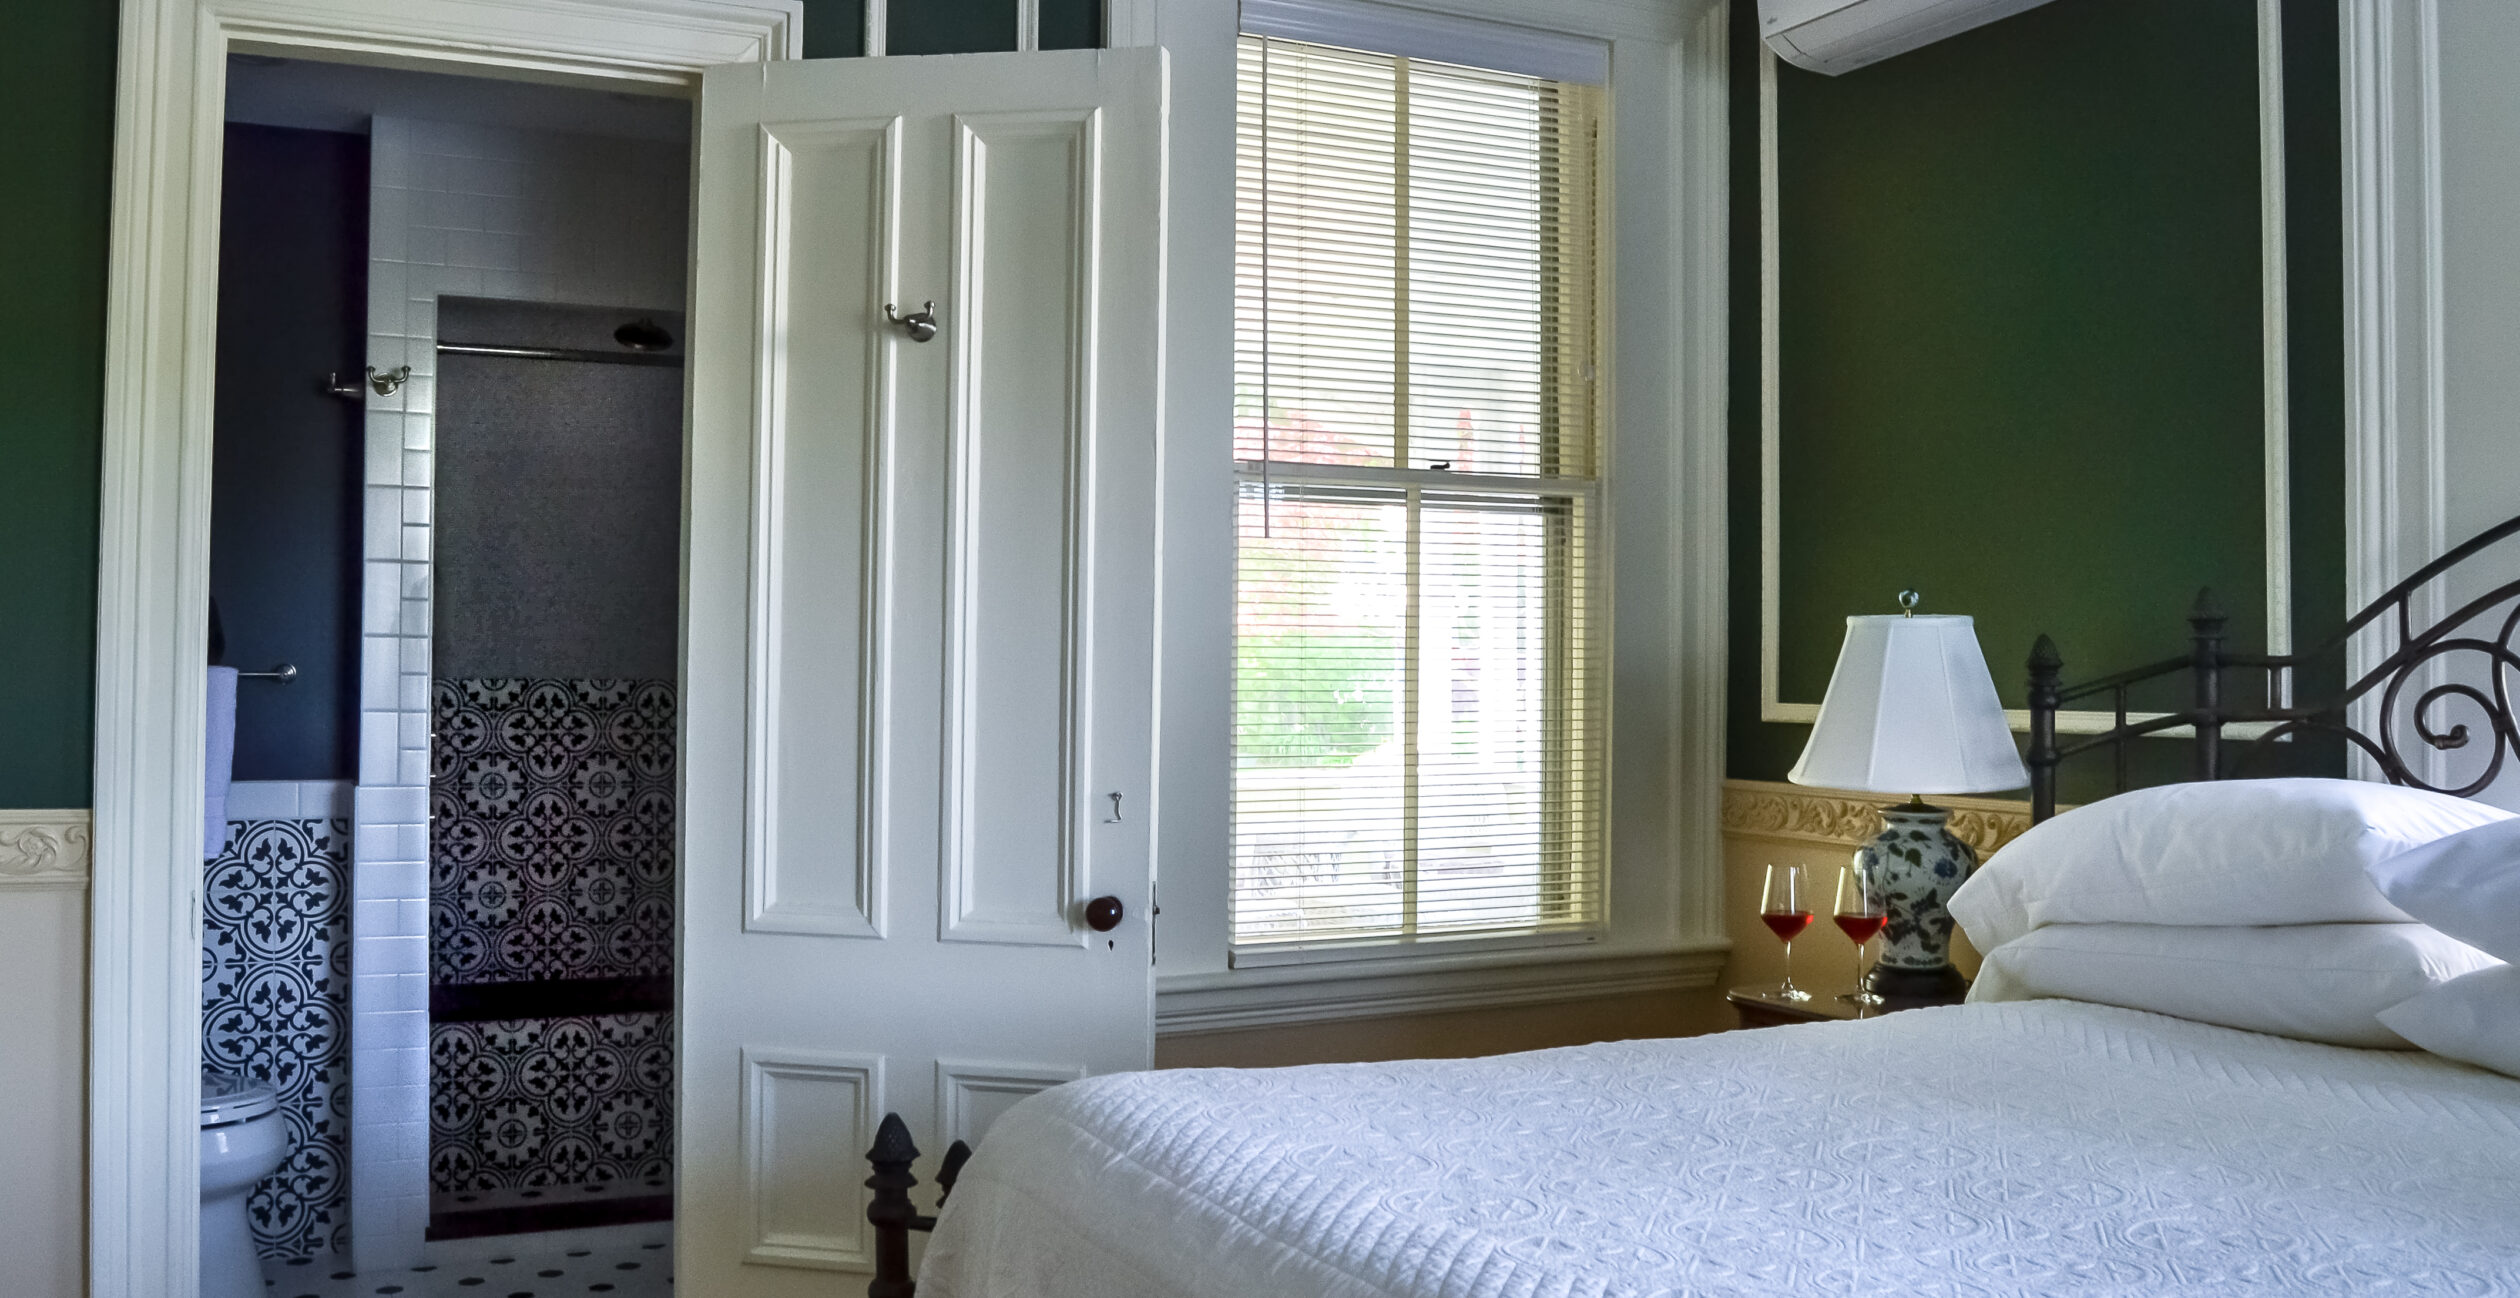 View of room and doorway to bathroom from bed